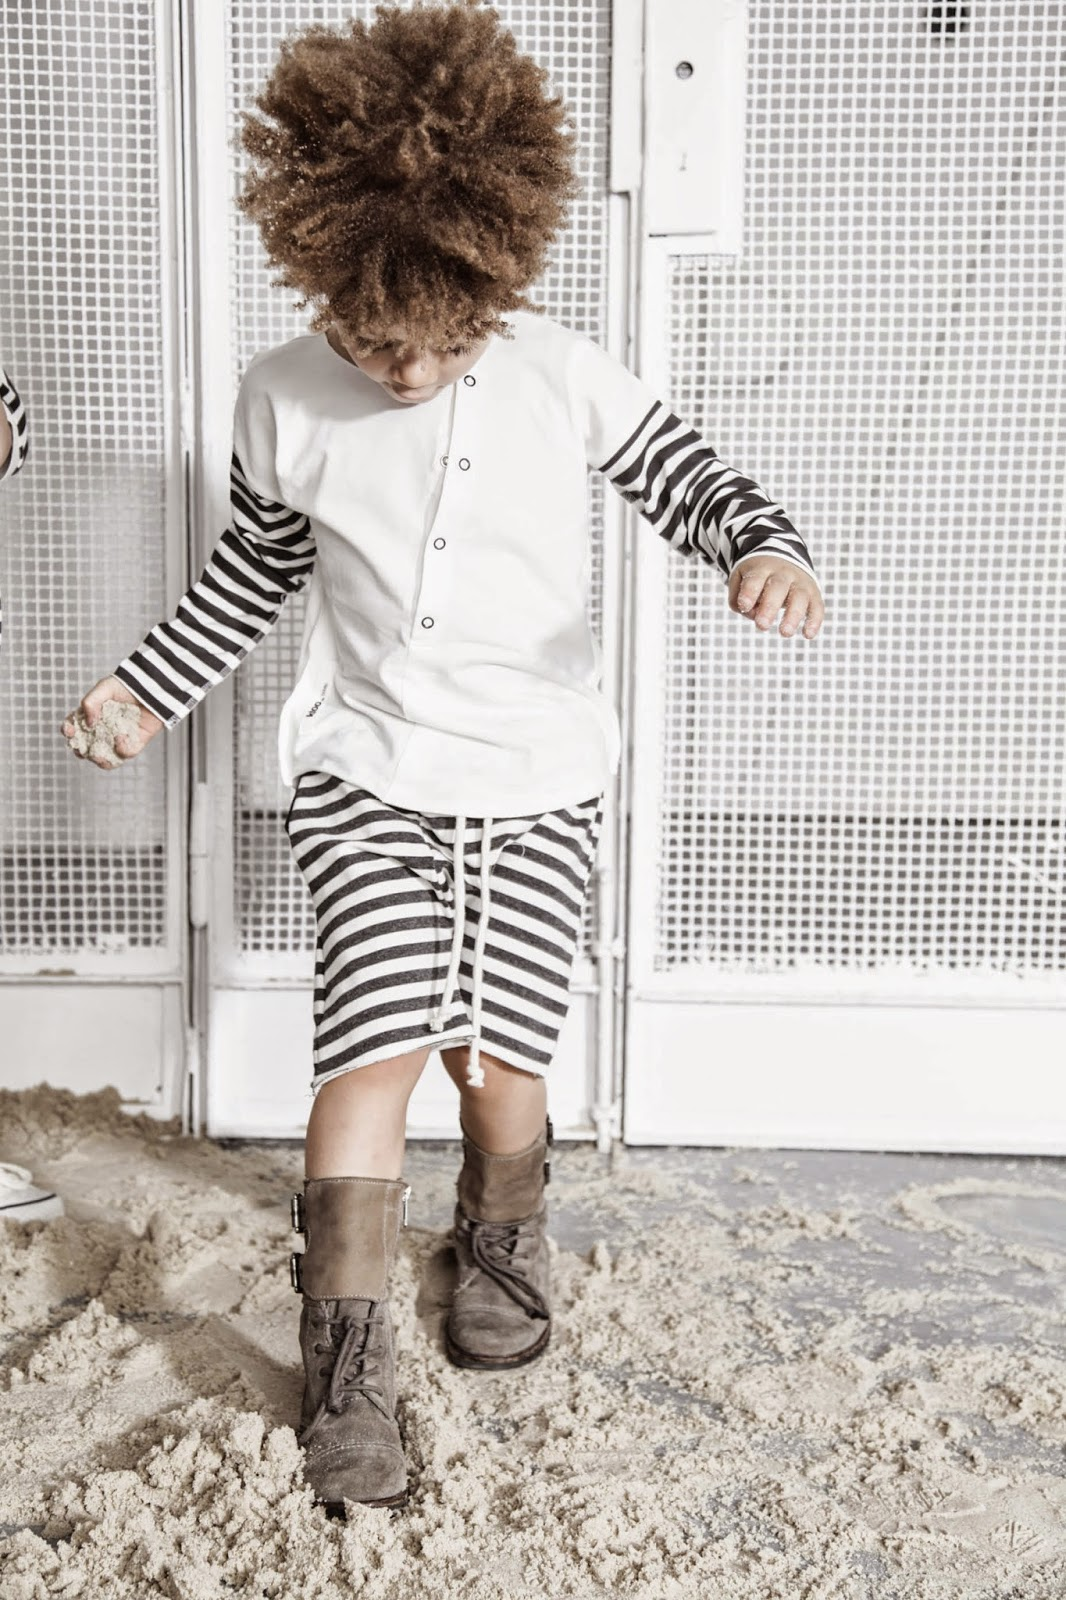 Kloo by Booso - Polish kids fashion spring-summer 2015 - basic stripes